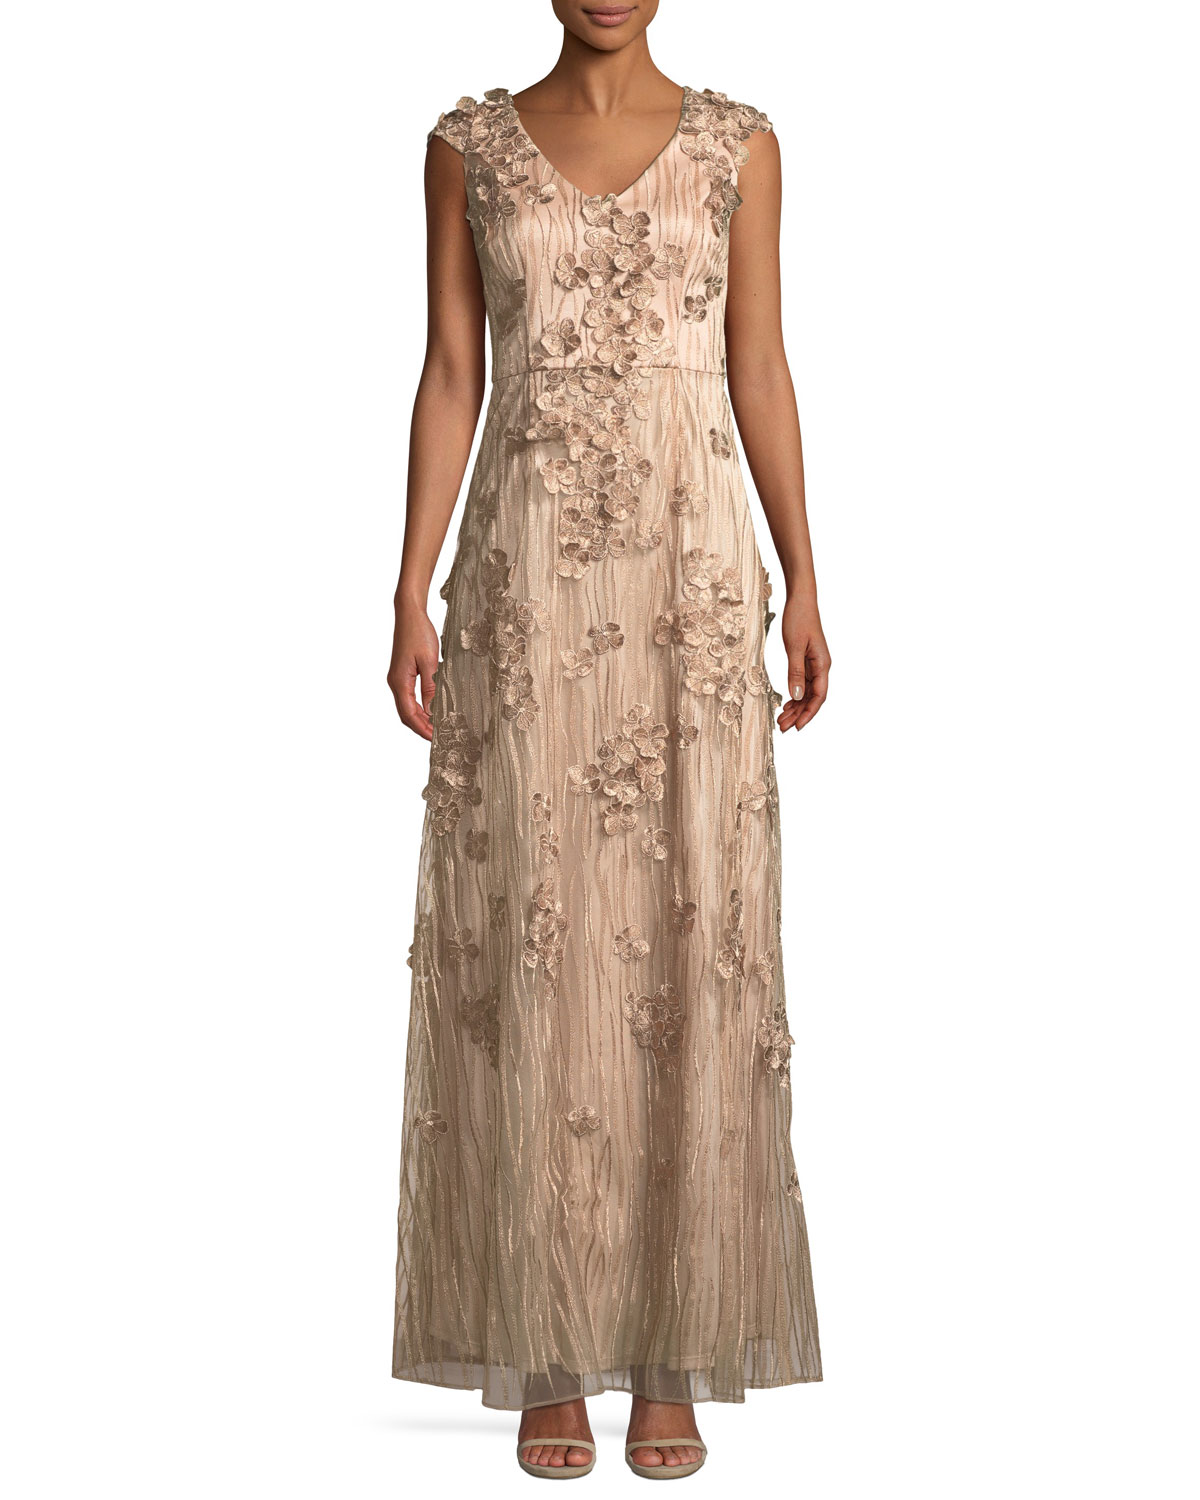 David Meister 3D Floral Embroidered Gown | Neiman Marcus